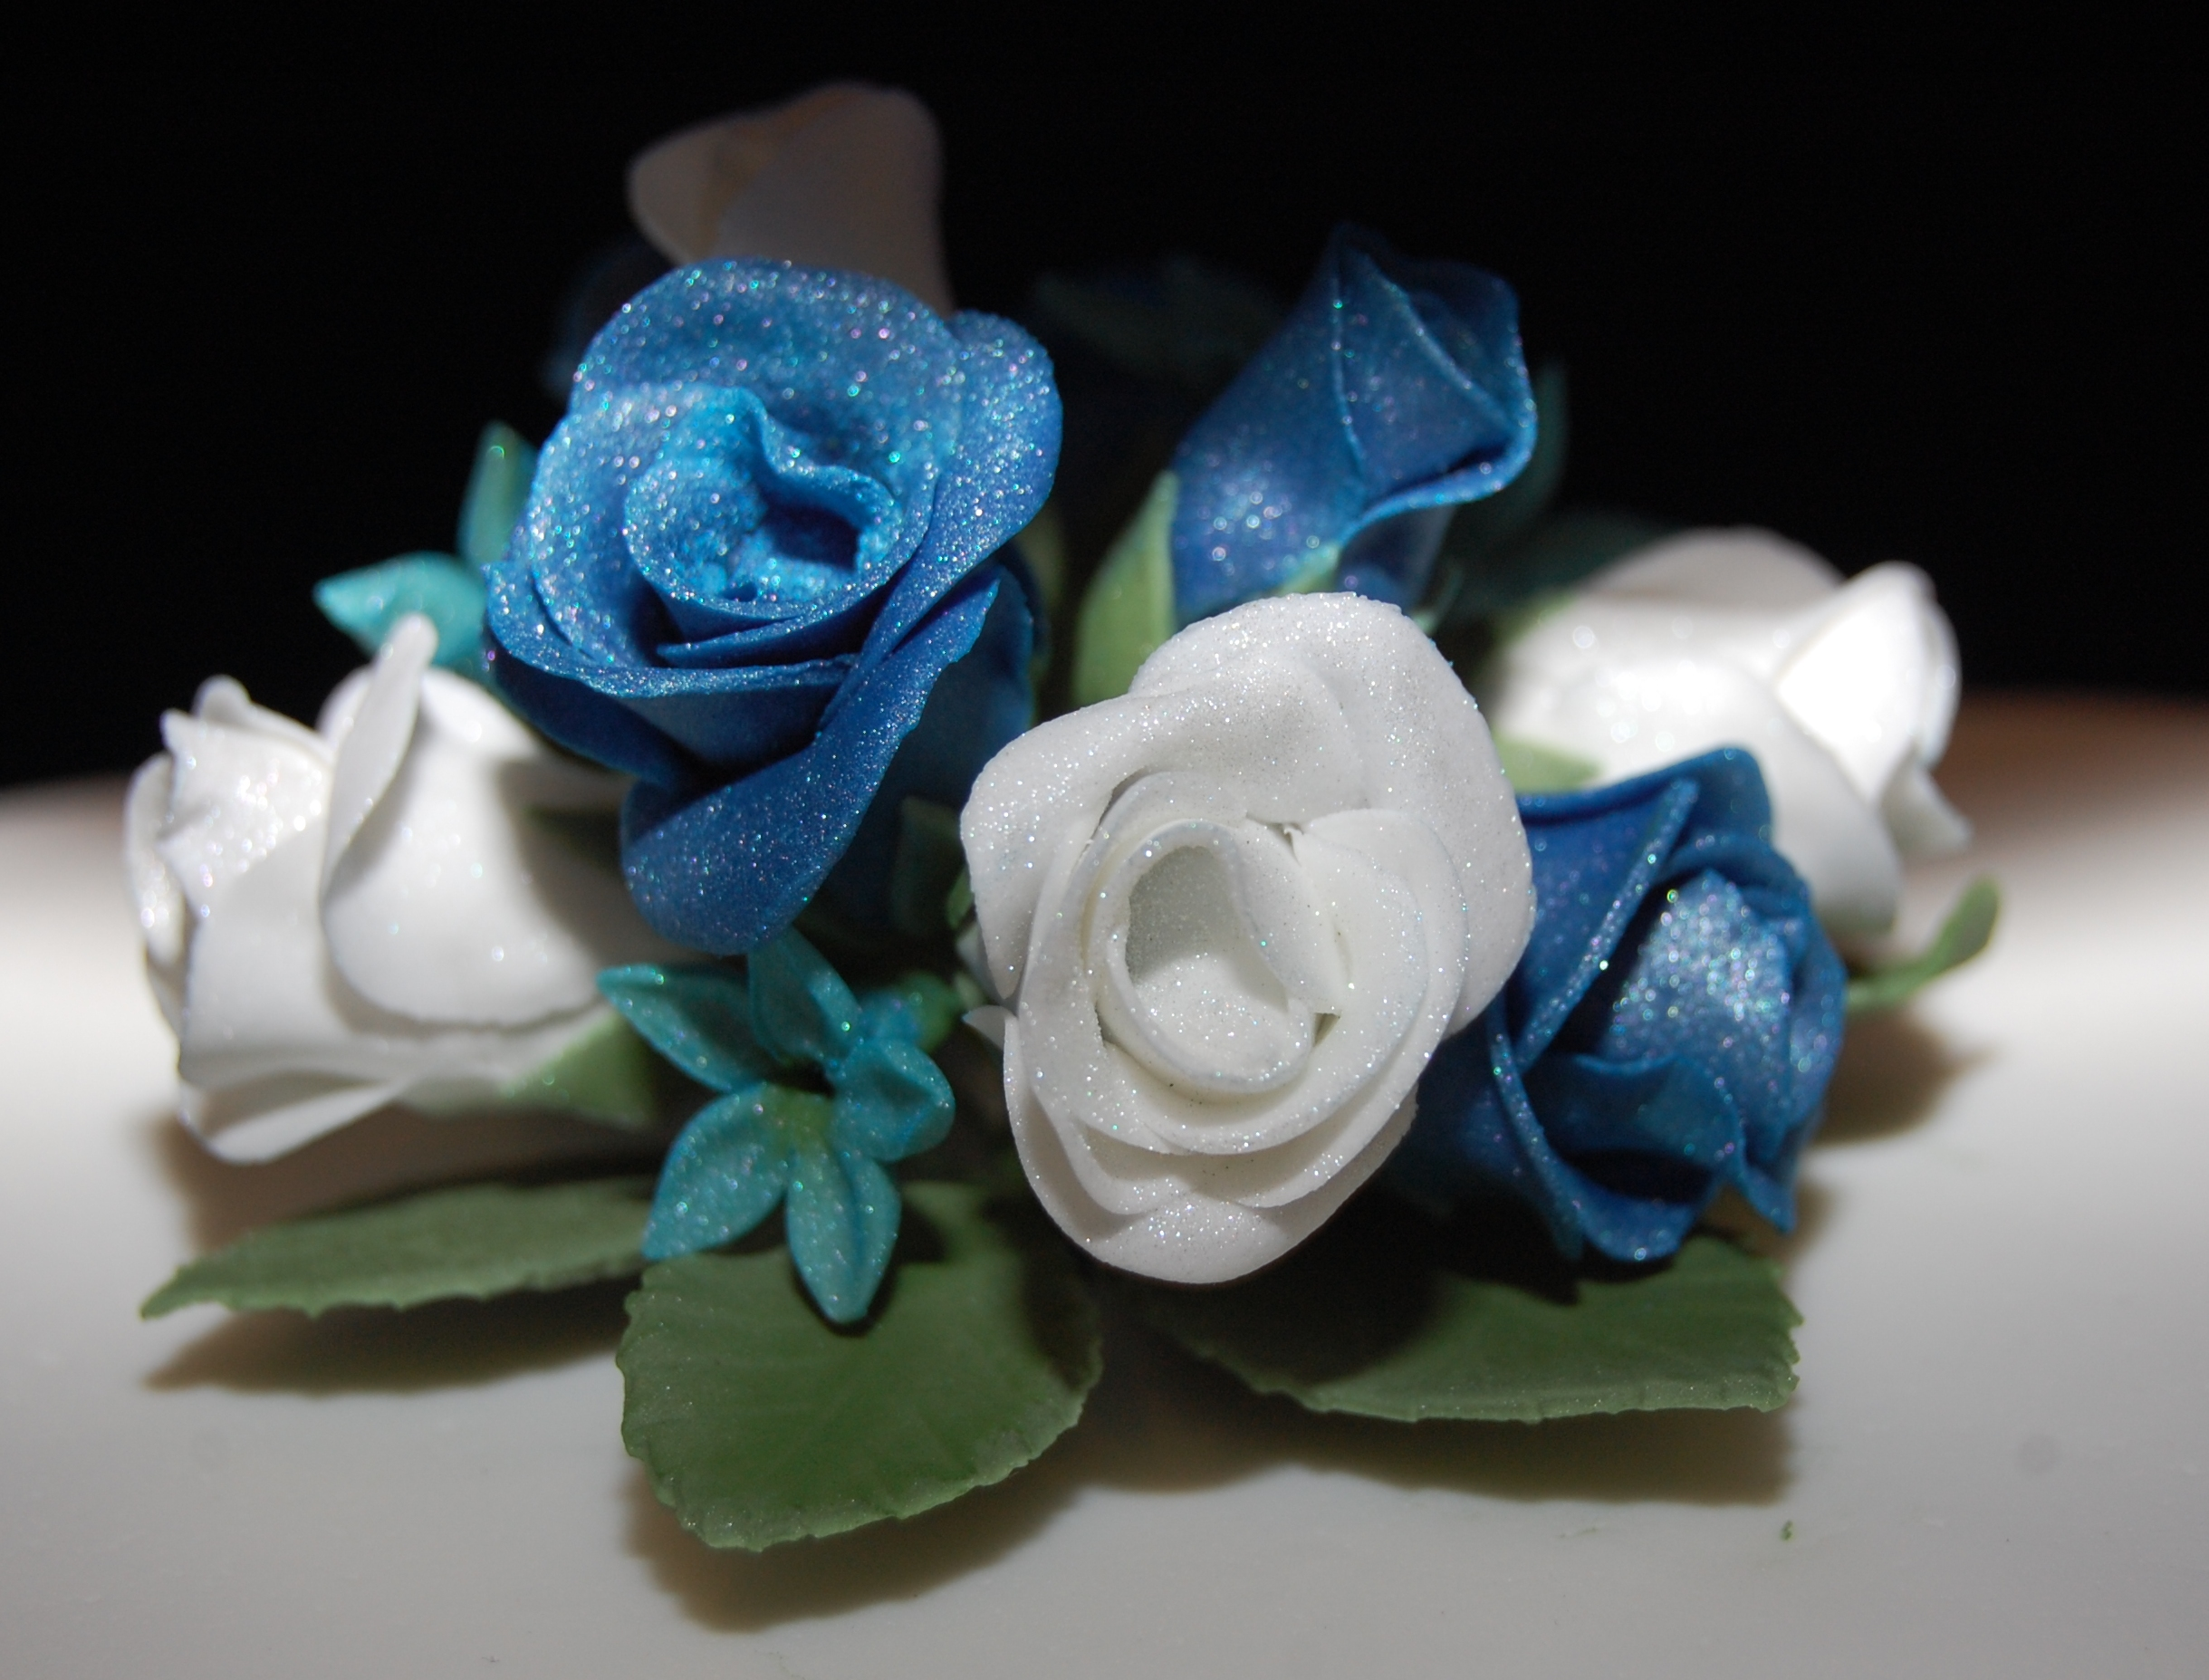 3 Tier Heart Shaped Wedding Cake With Royal Blue And Turquoise Roses